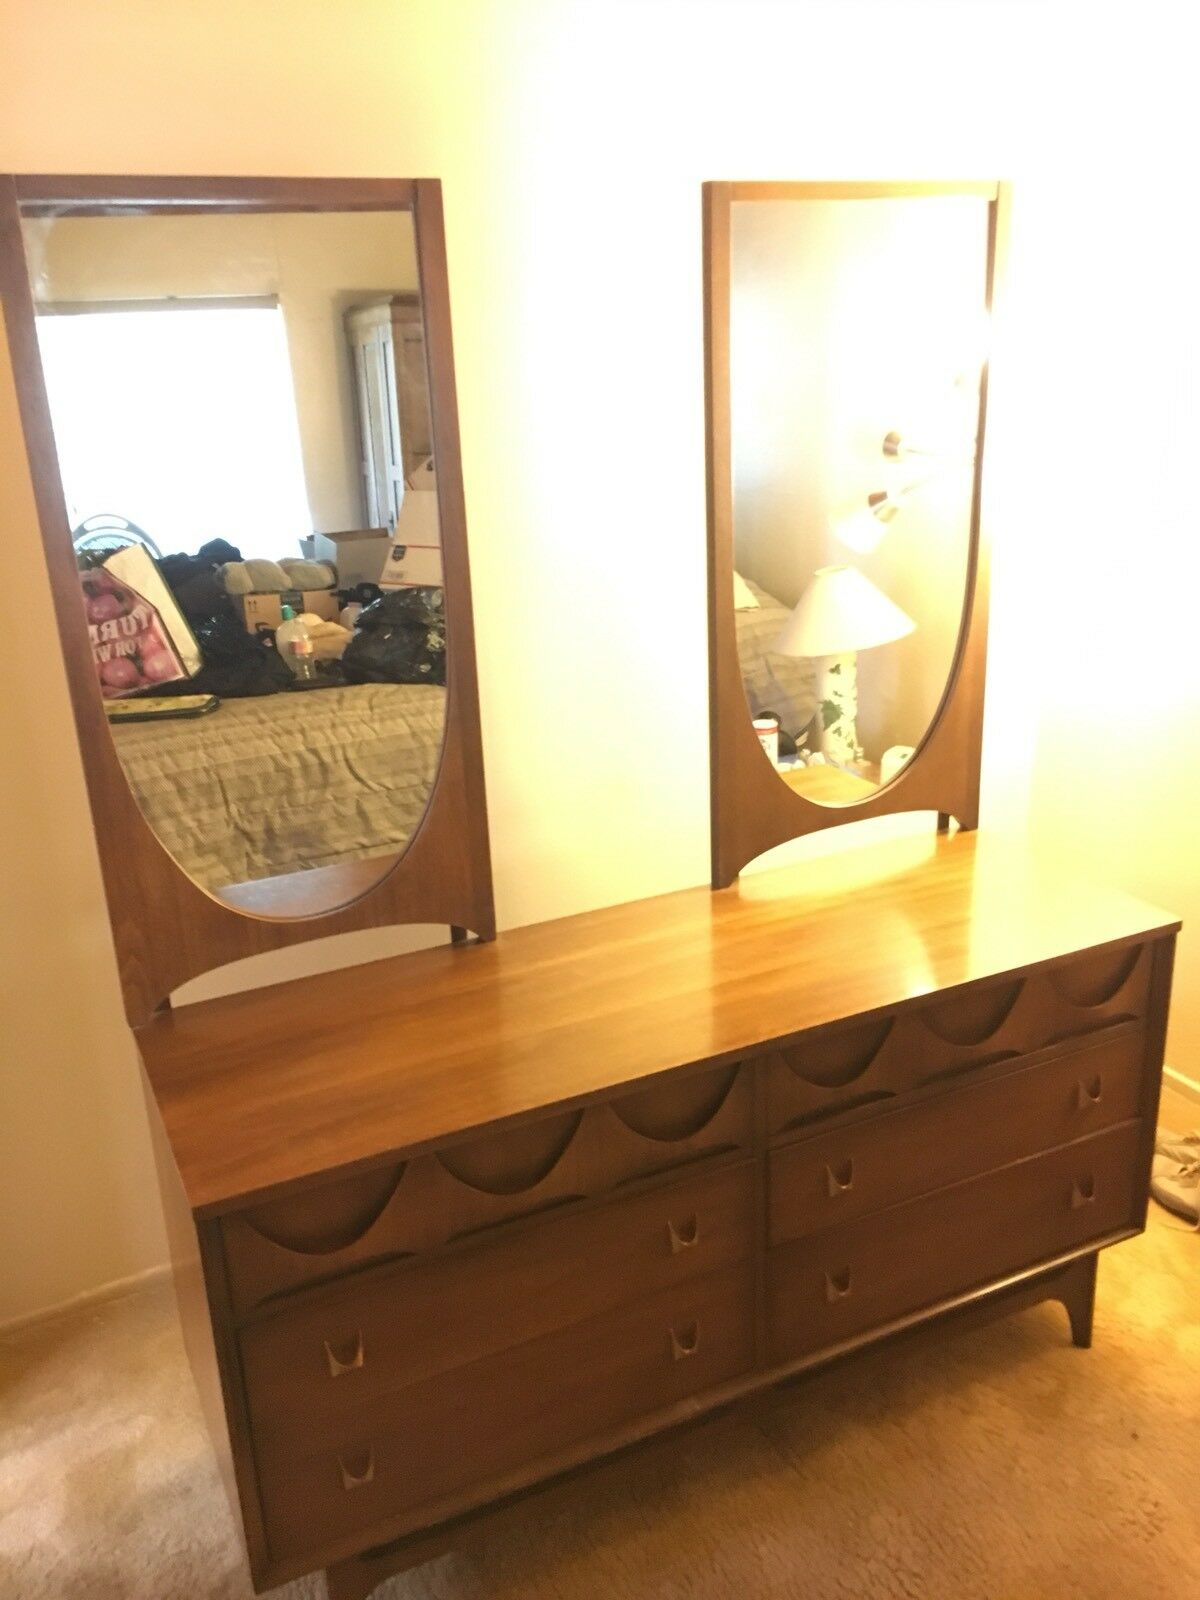 Broyhill Brasilia 6 Drawer Dresser Or Credenza With 2 Mirrors Mid Century So Cal 1 Of 12 See More